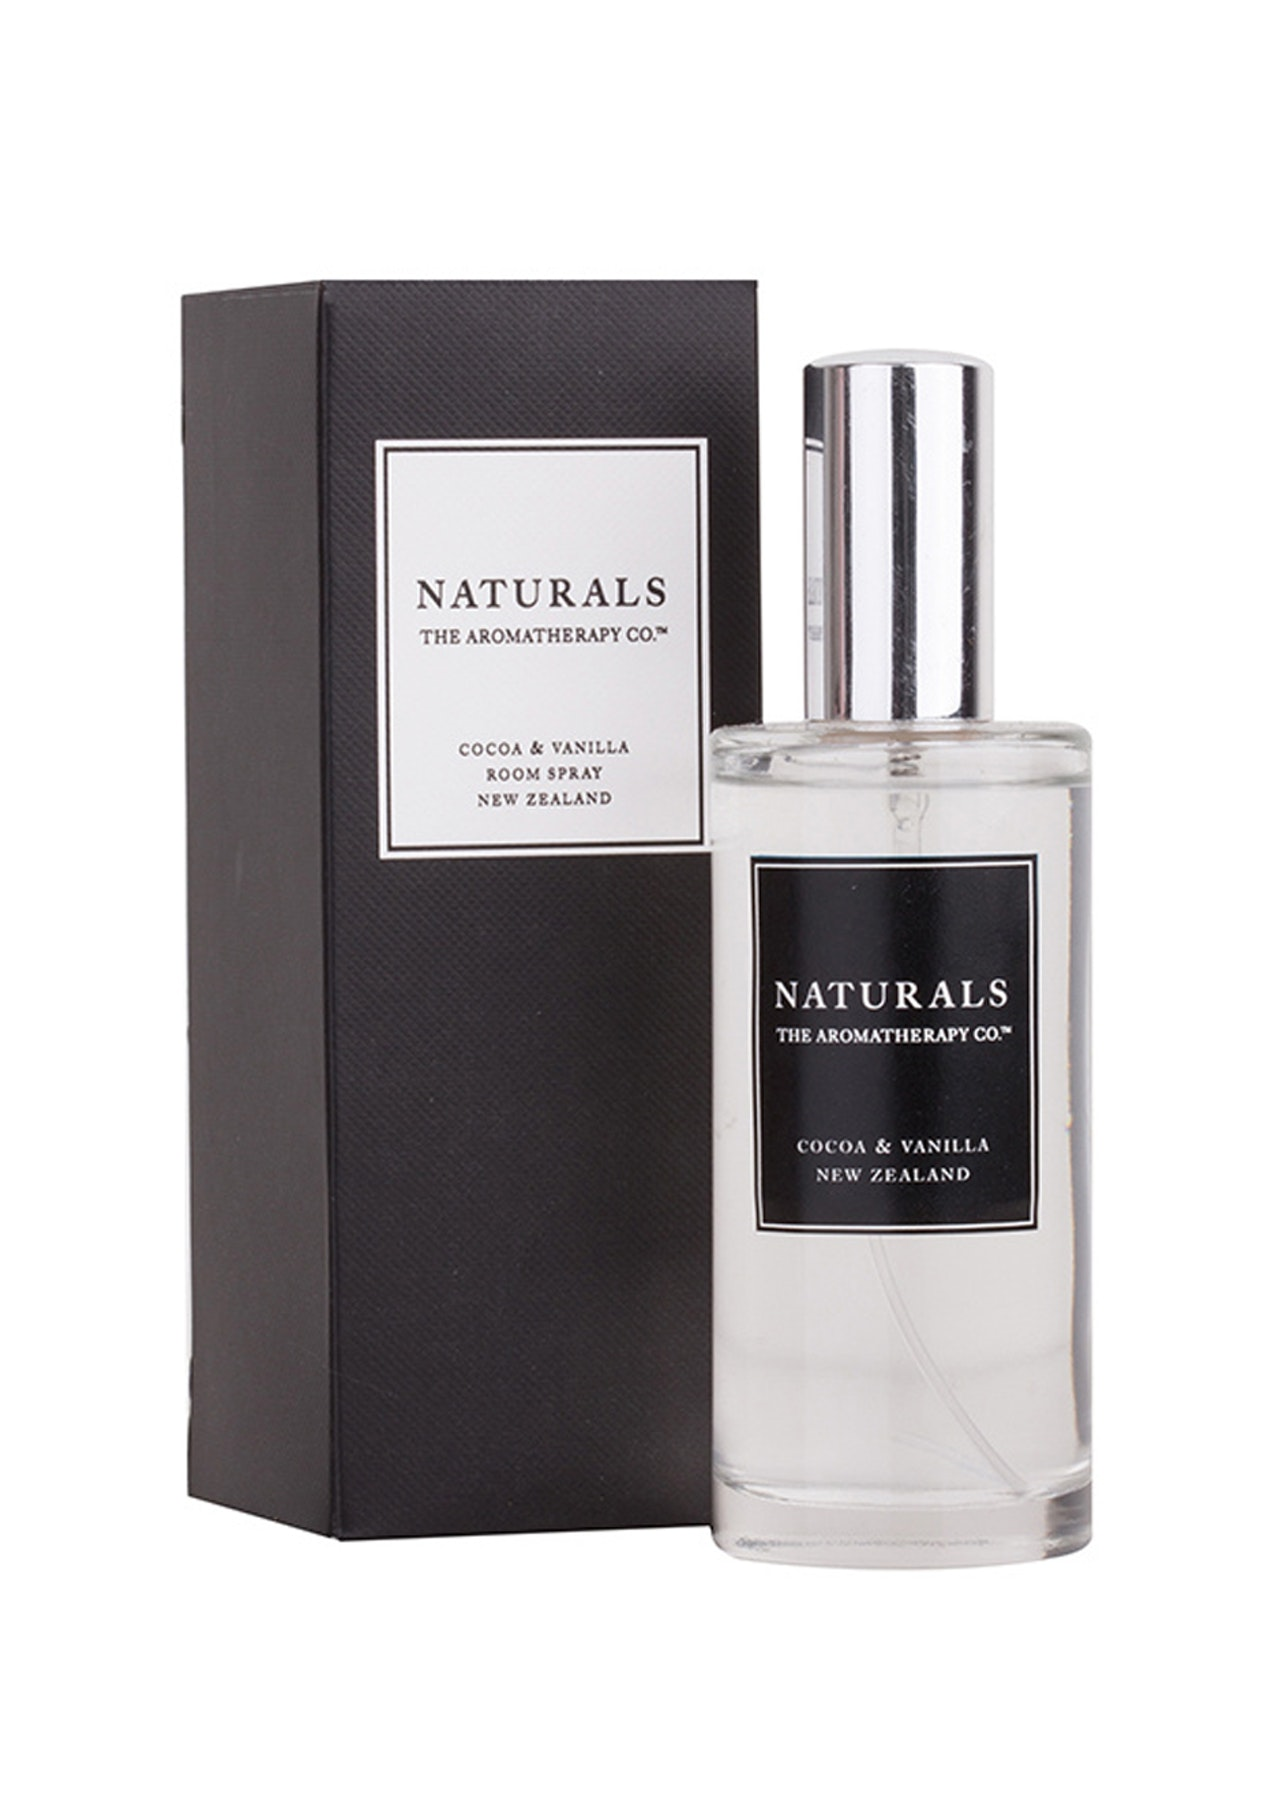 Naturals Room Spray 100ml Cocoa & Vanilla - Best of the Month - Onceit